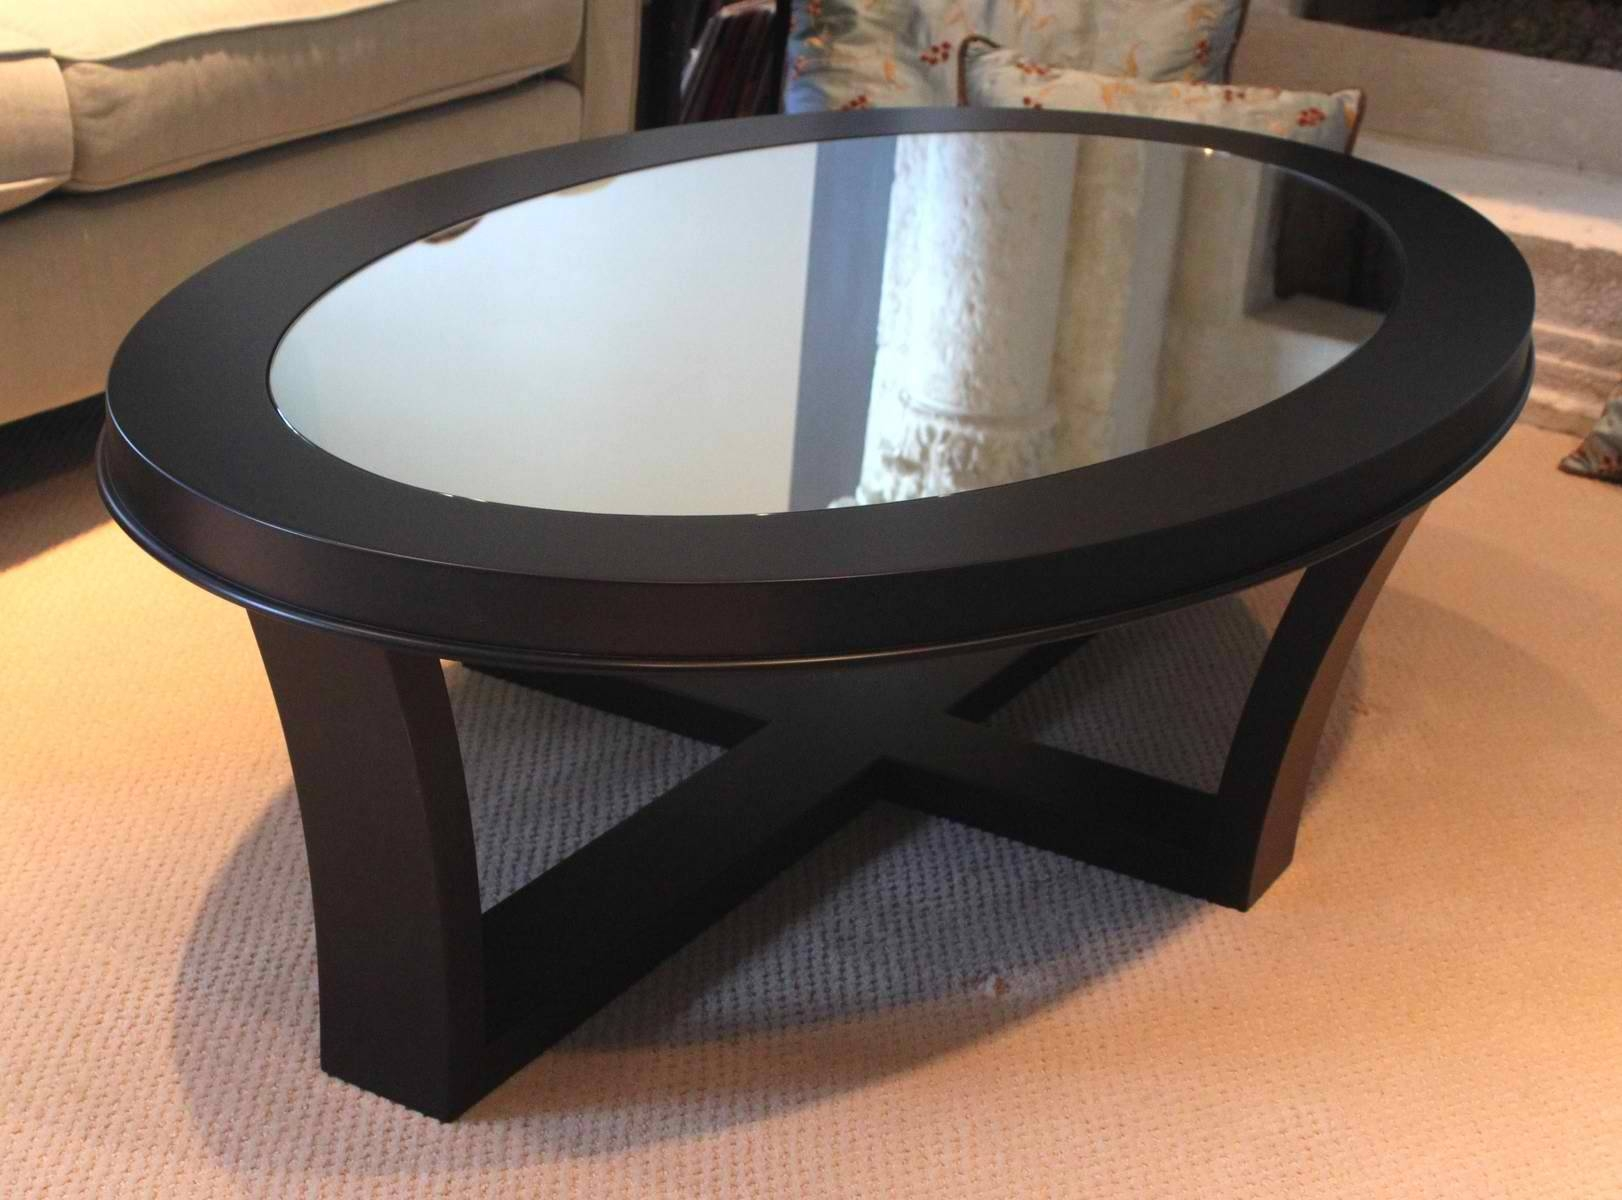 Bedside Tables Square Glass And Wood Coffee Tables Home Design in Clock Coffee Tables Round Shaped (Image 4 of 30)